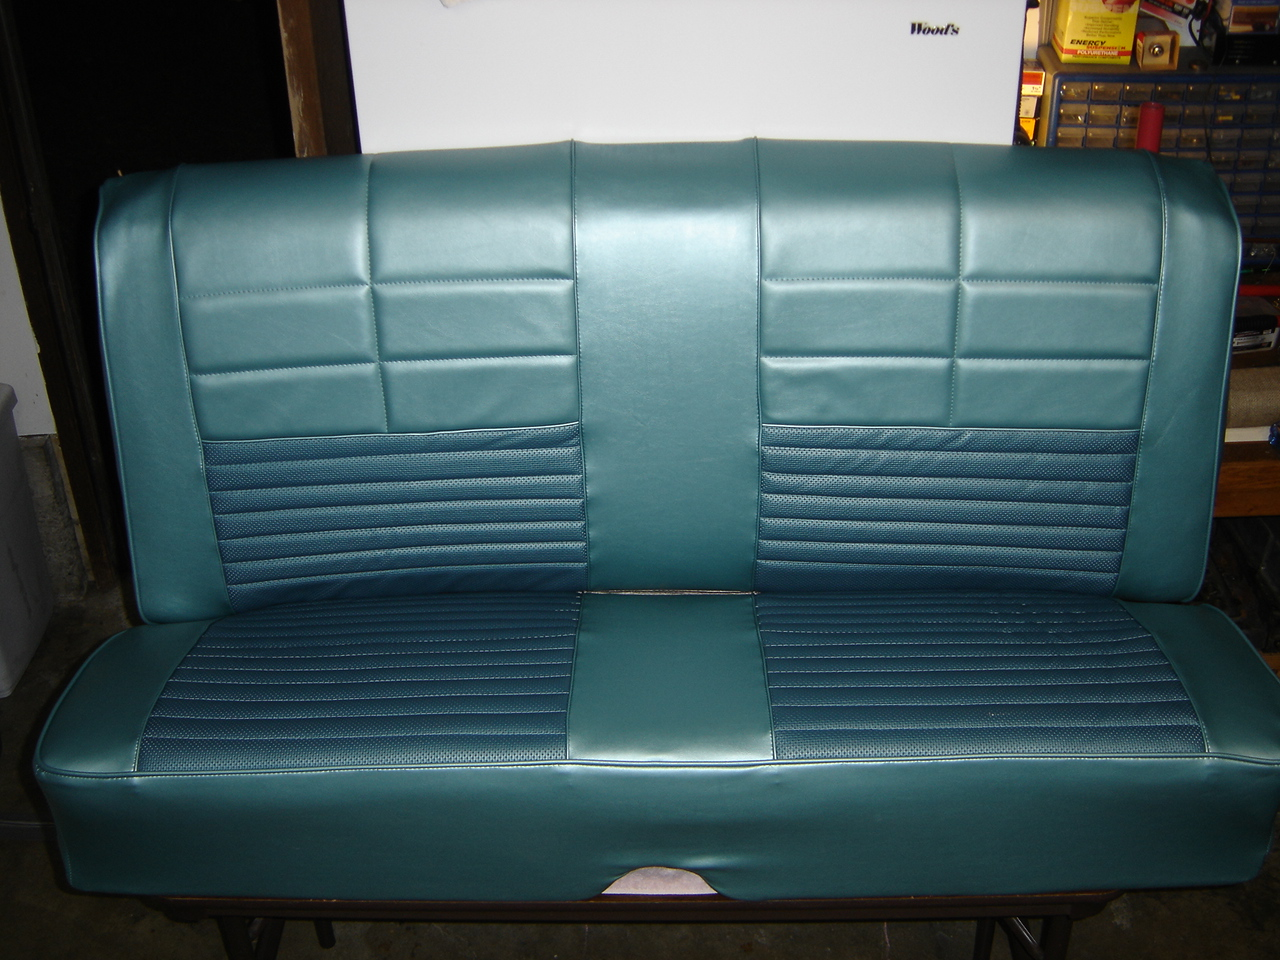 1966 Ford Fairlane 500 Rear Seat